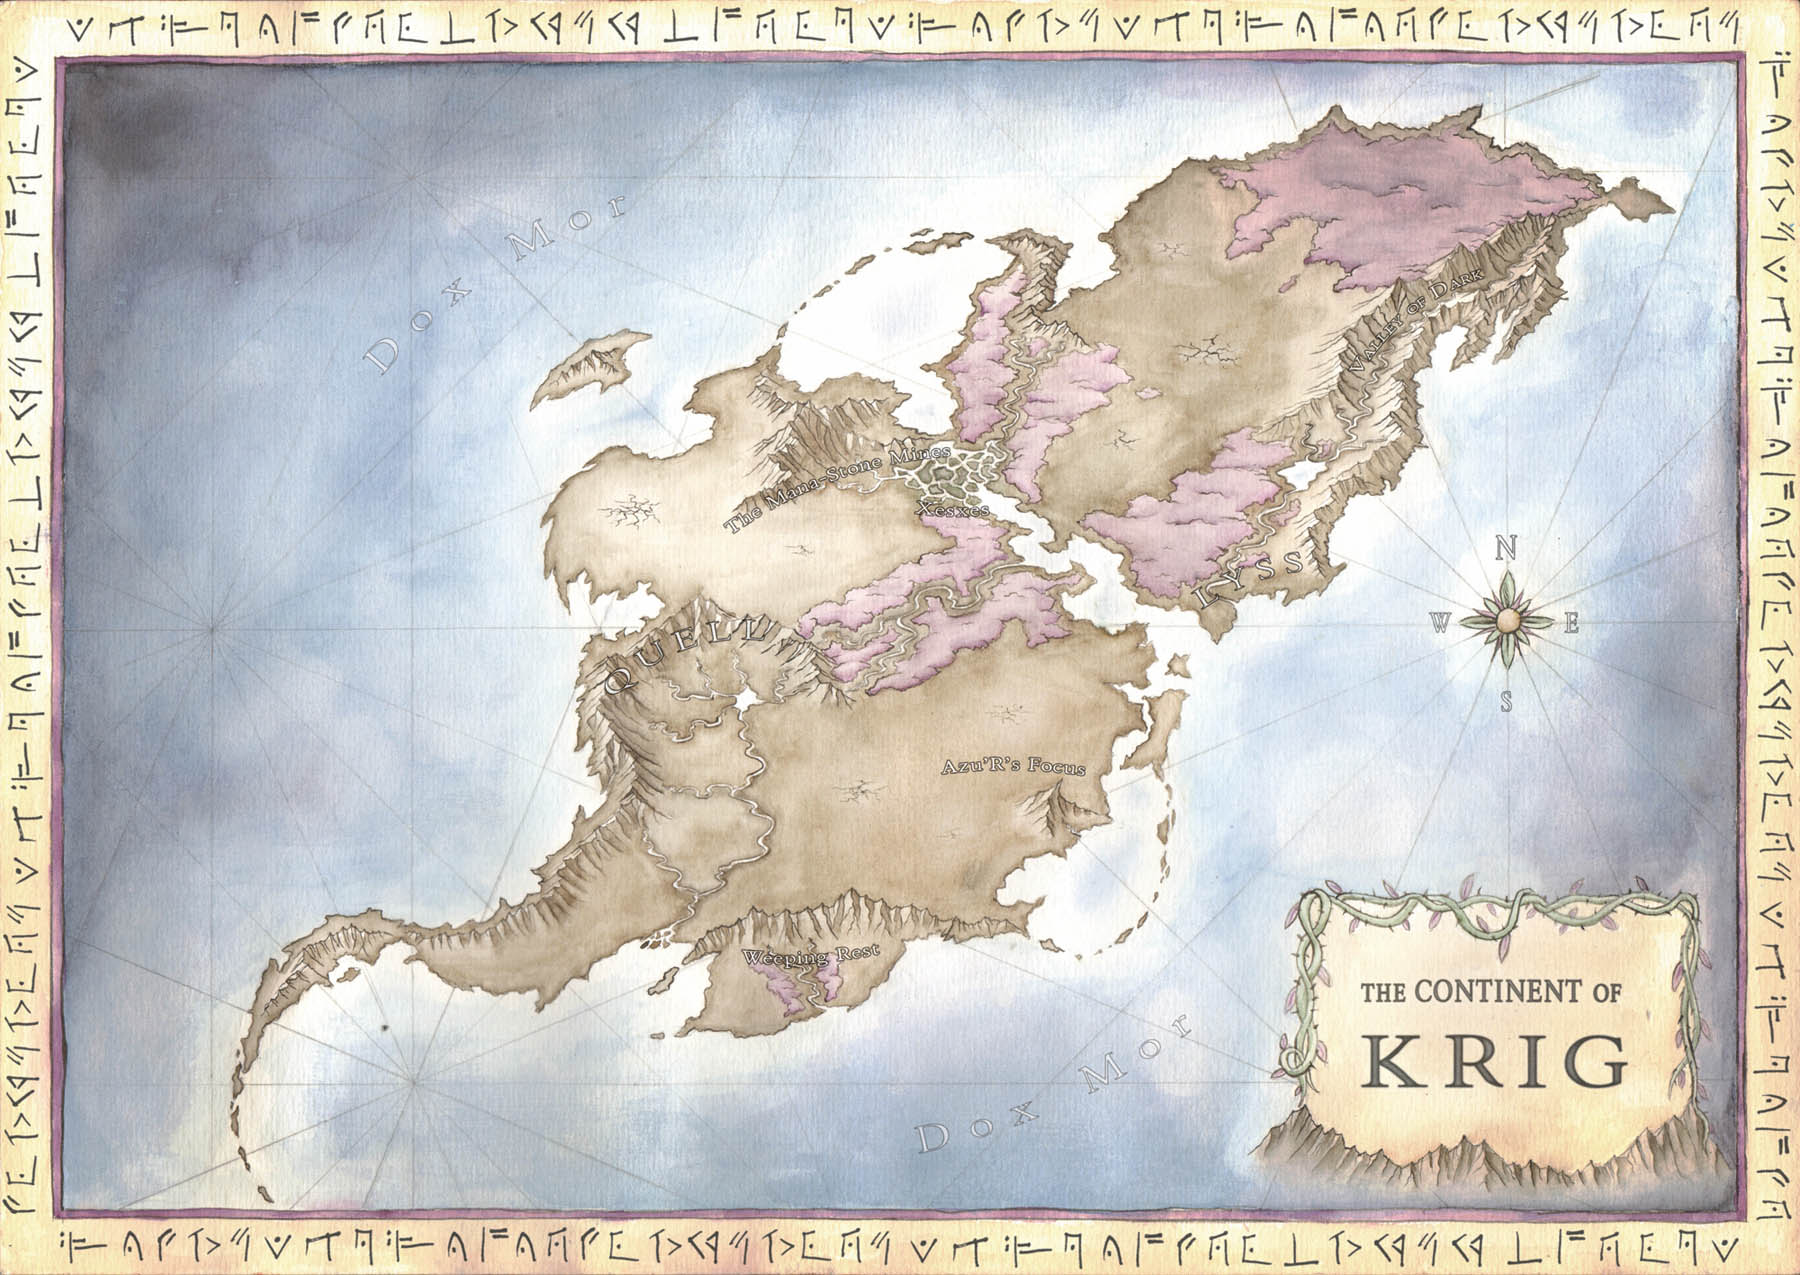 Krig